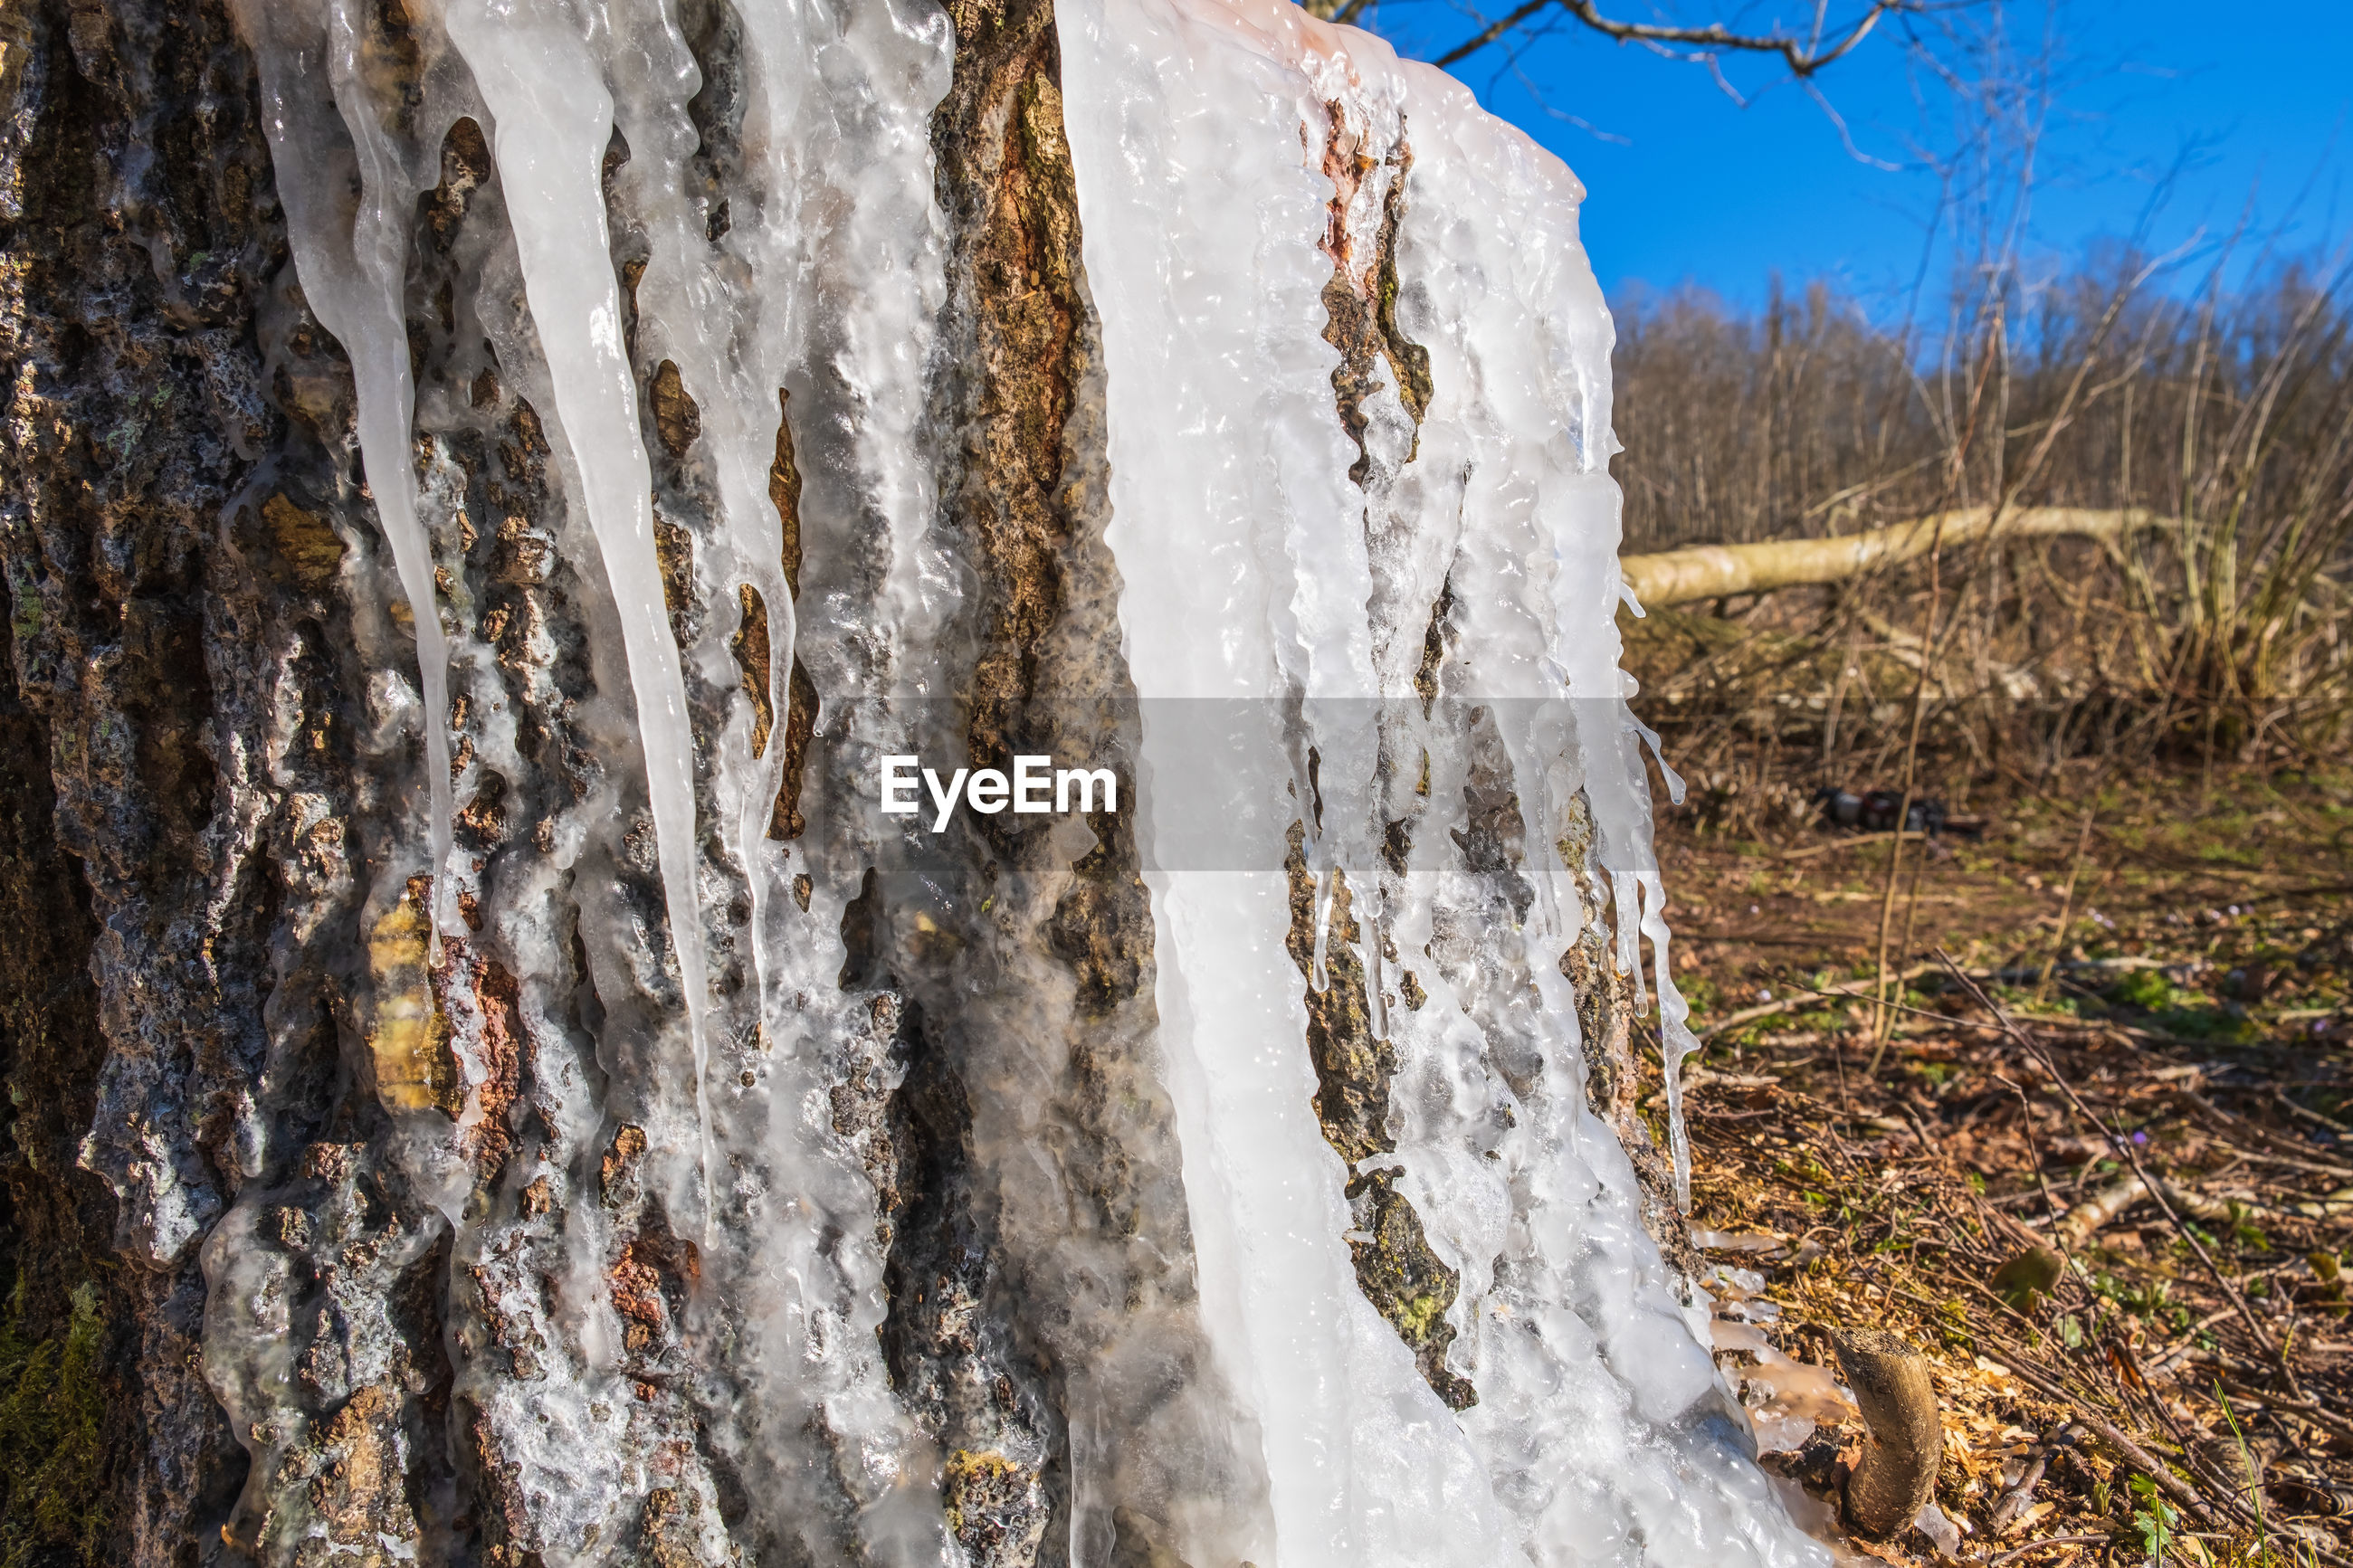 PANORAMIC SHOT OF ICICLES ON ROCK